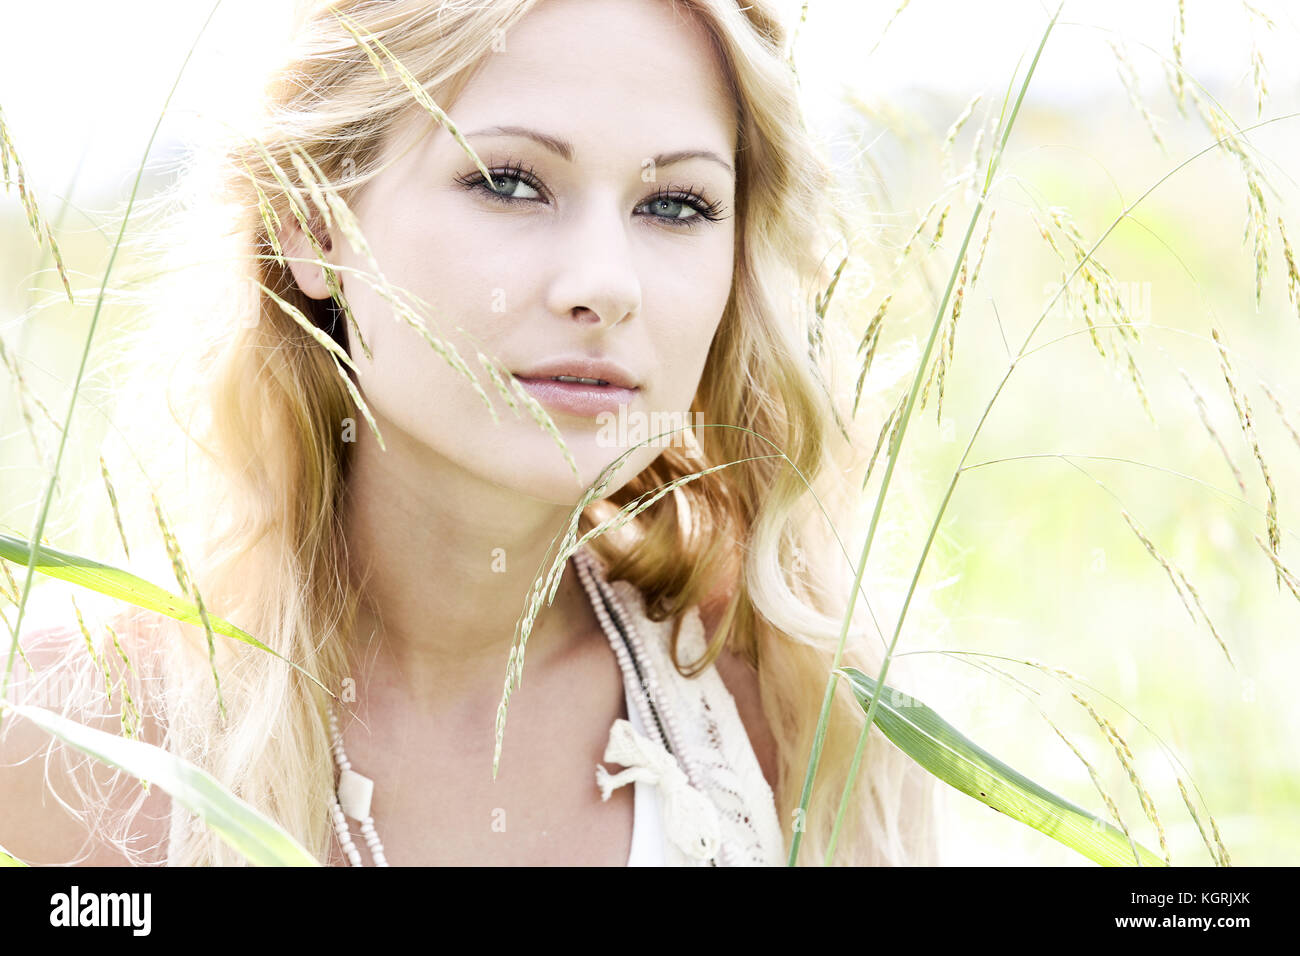 Glamorous young woman standing in meadow - Stock Image